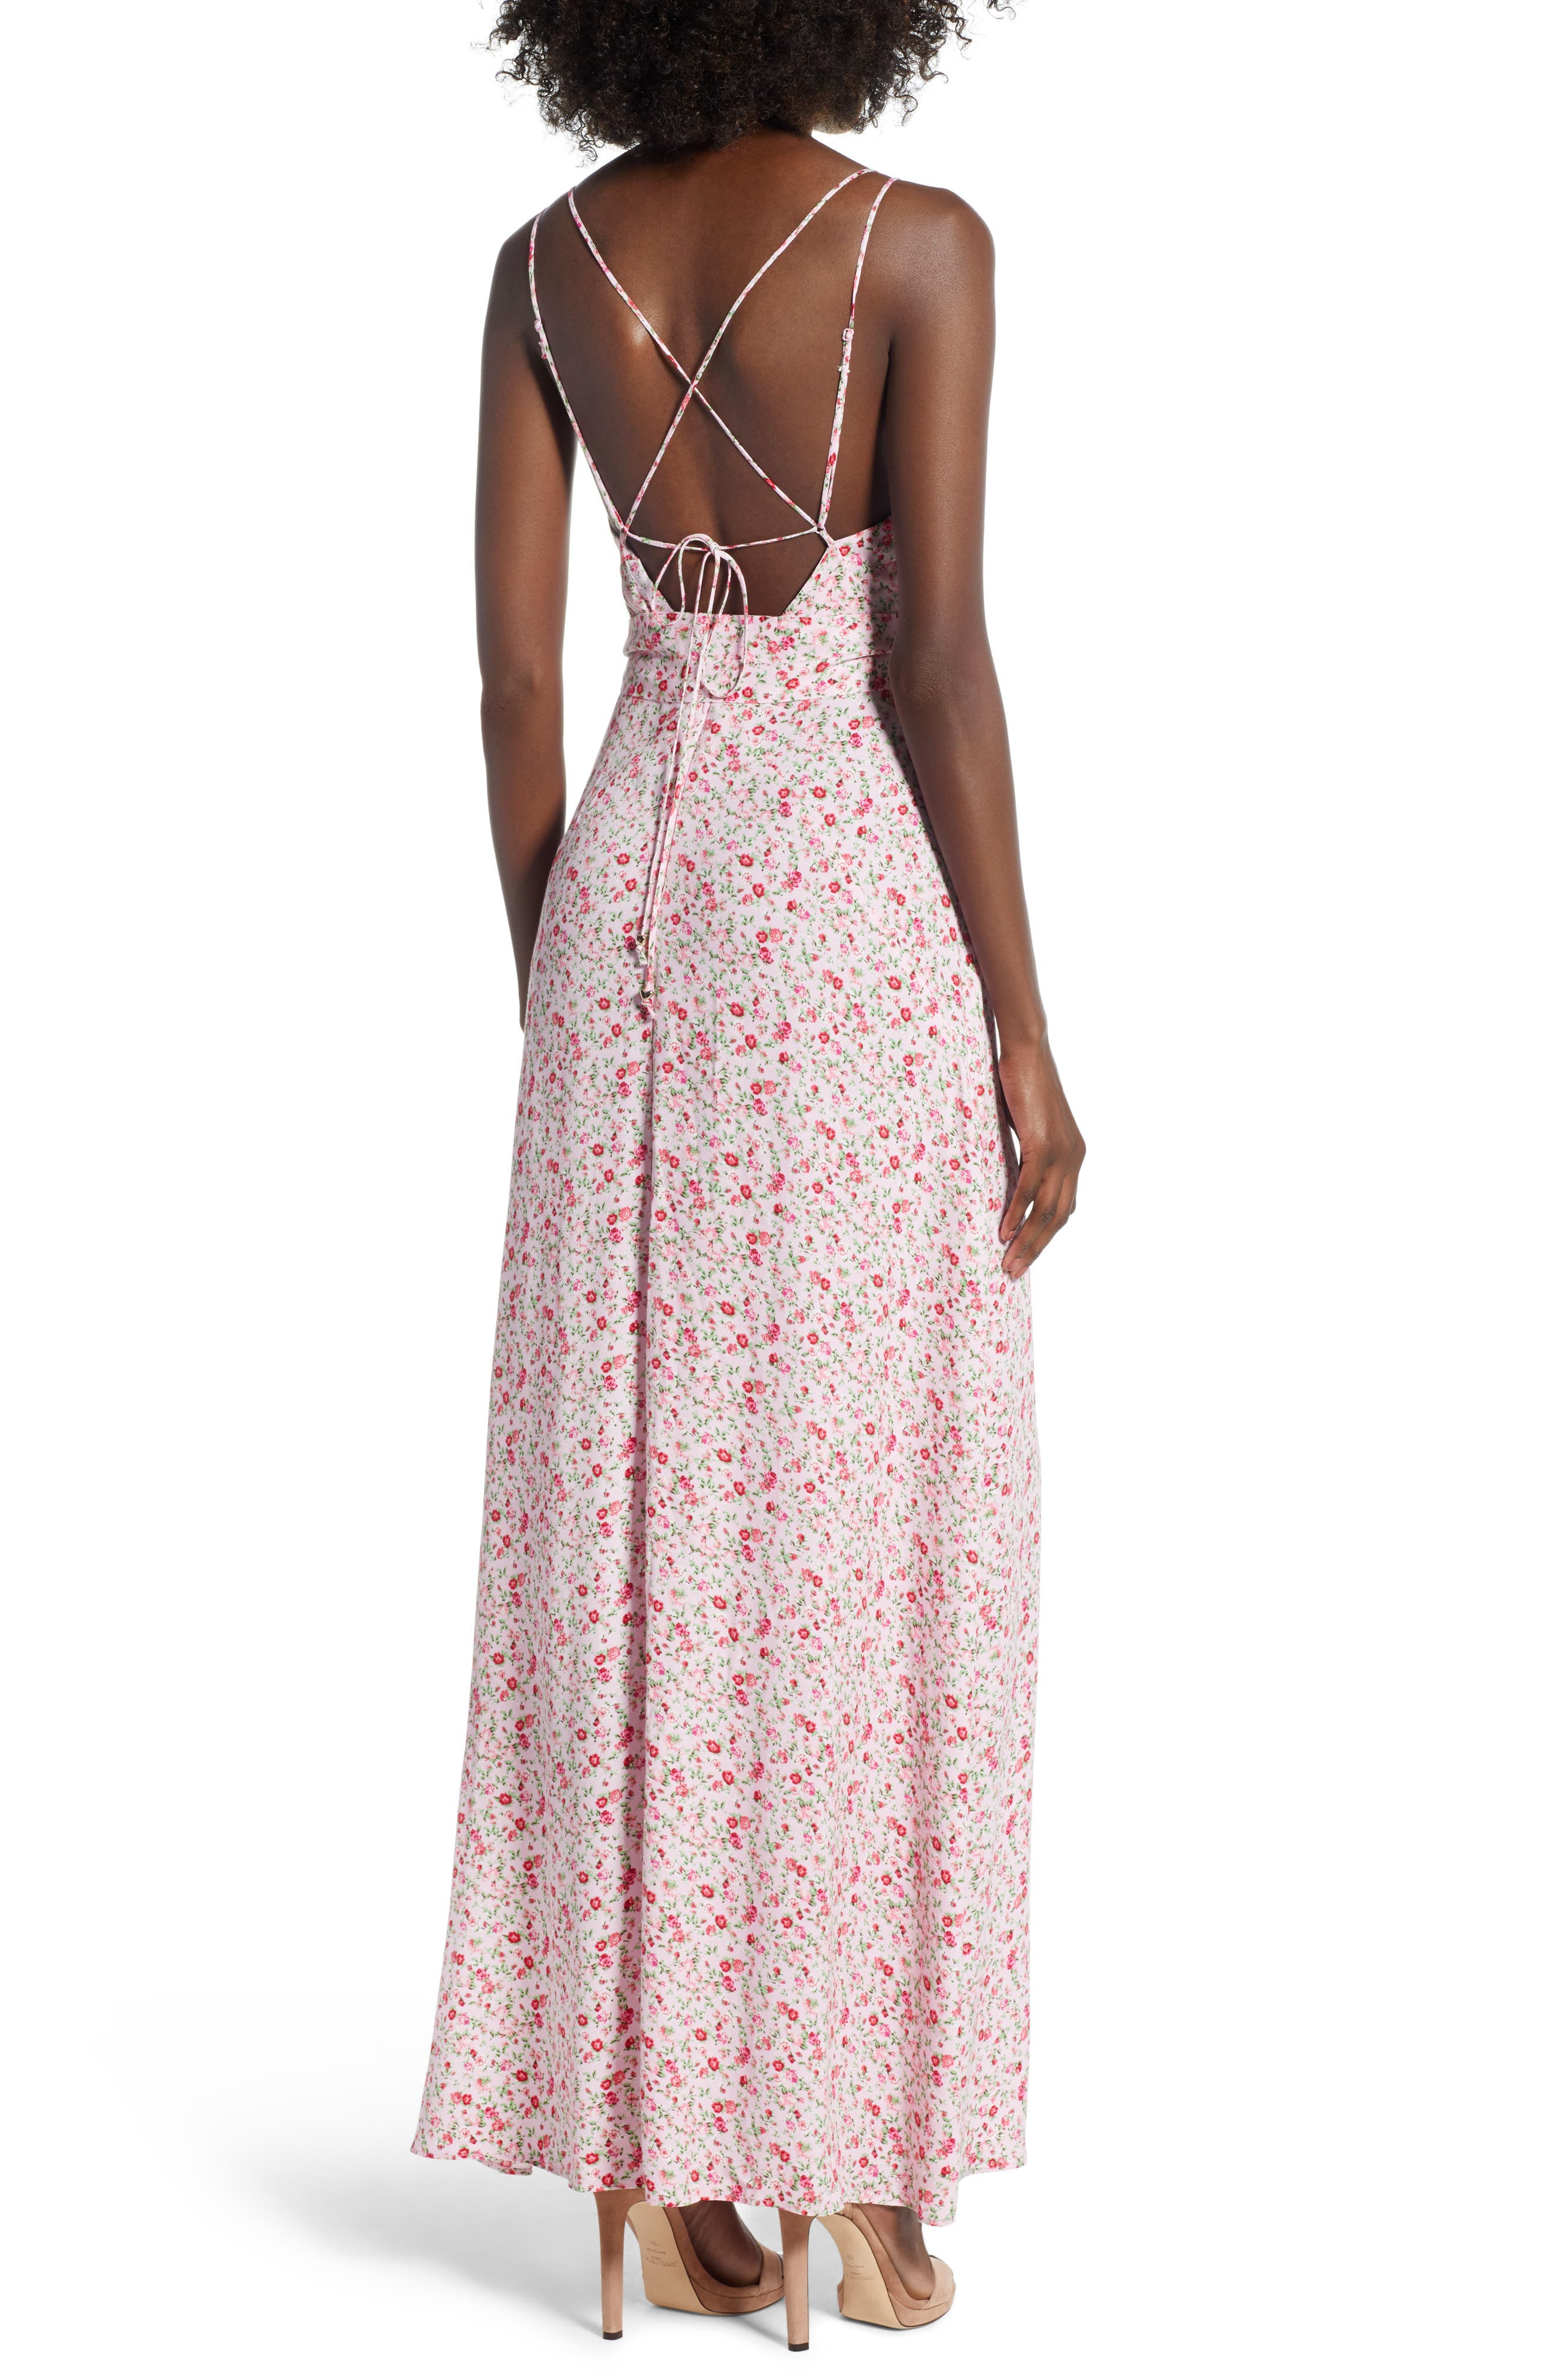 Diego Maxi Dress,                             Alternate thumbnail 2, color,                             BABY PINK DITSY